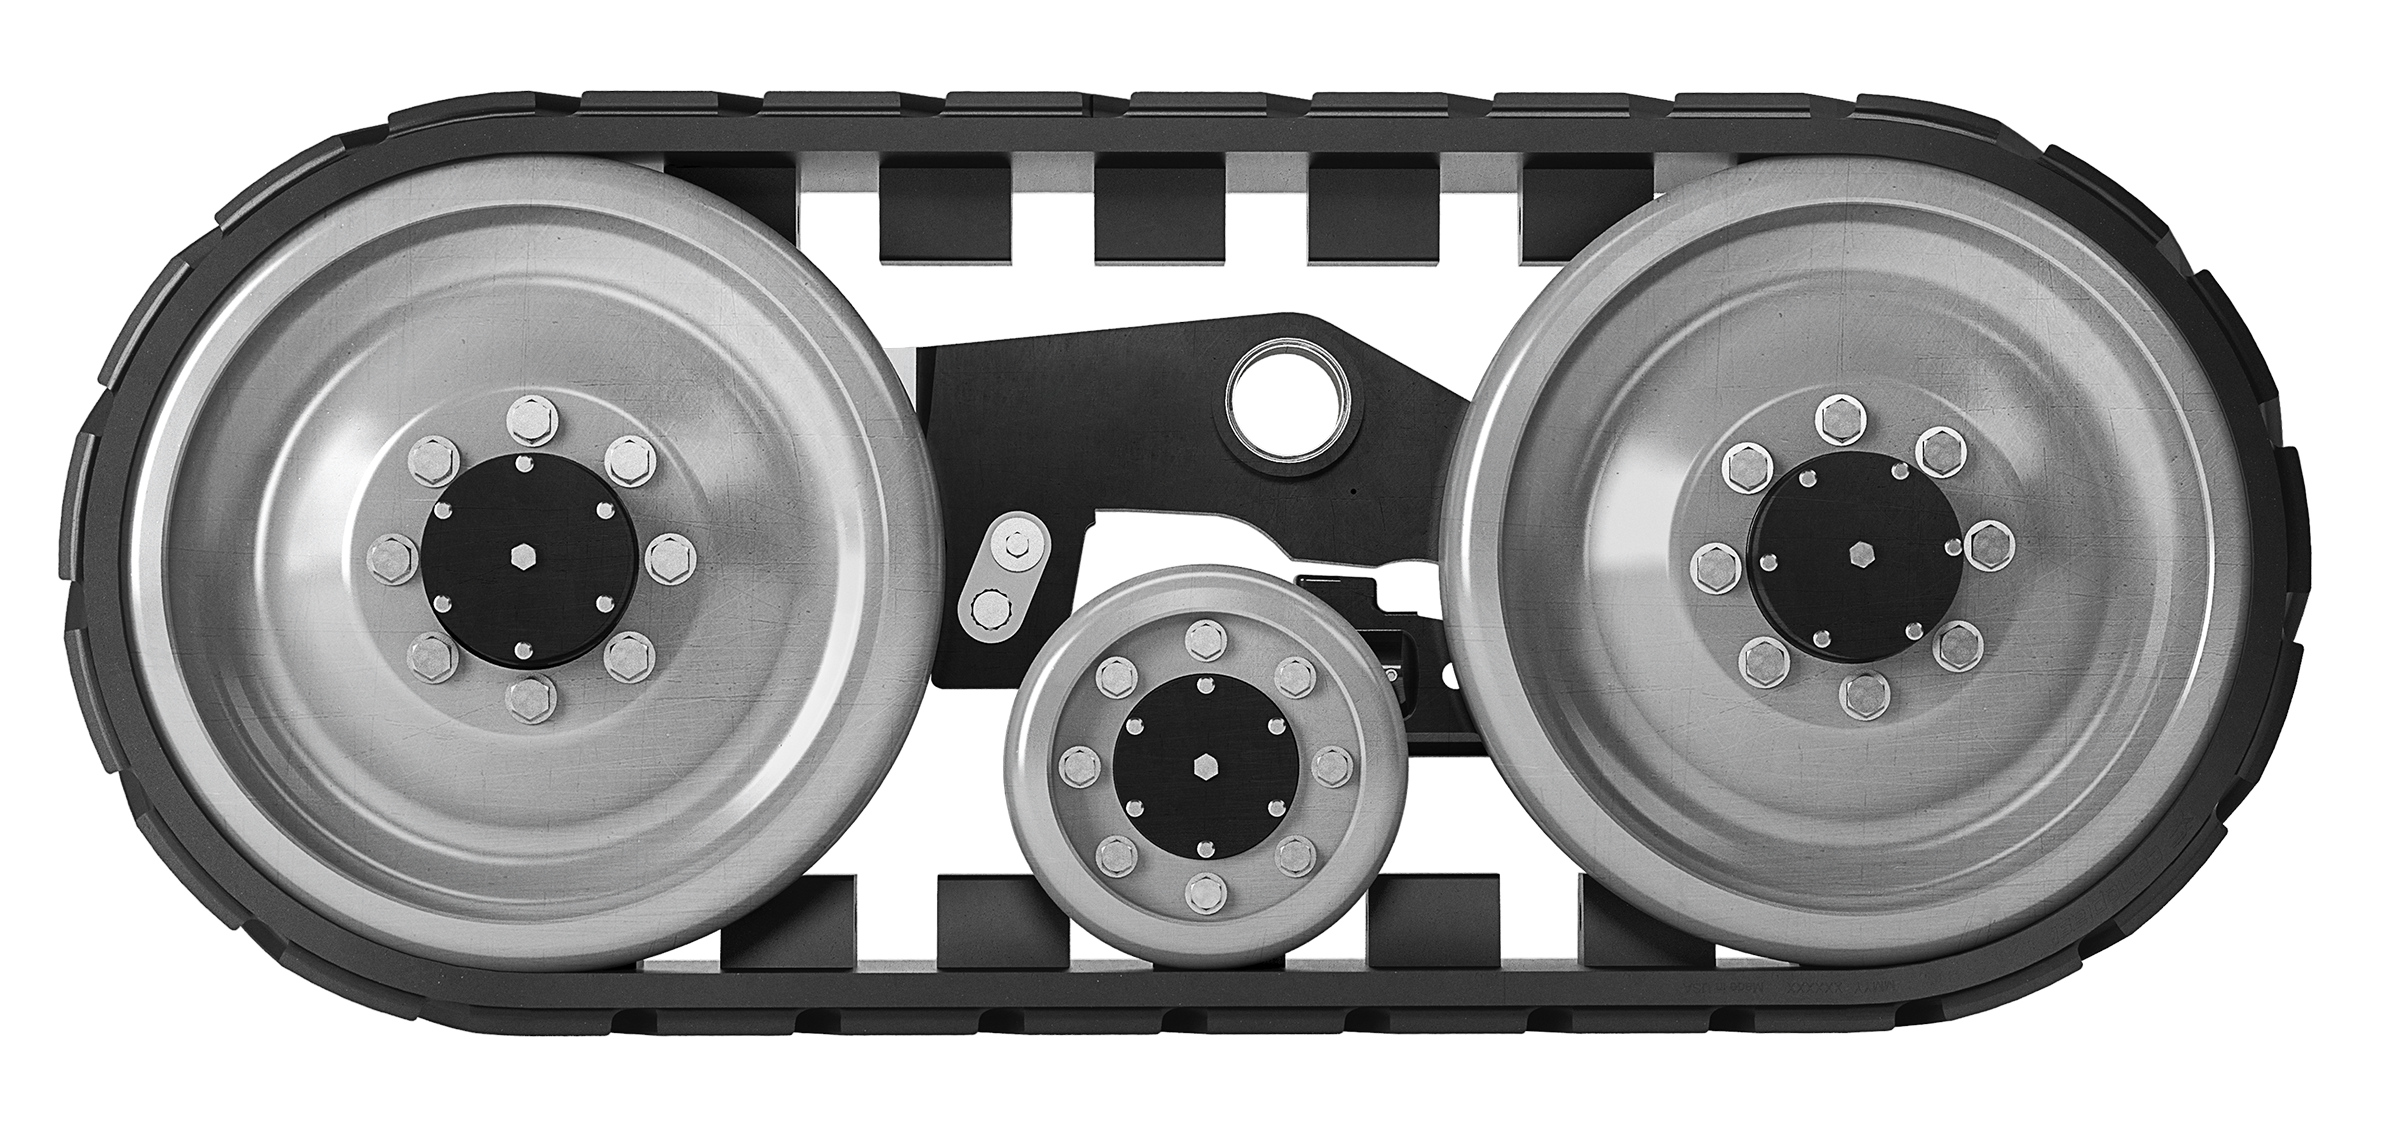 Camso Planters, Strip Till, Seed Carts Undercarriage Systems TTS